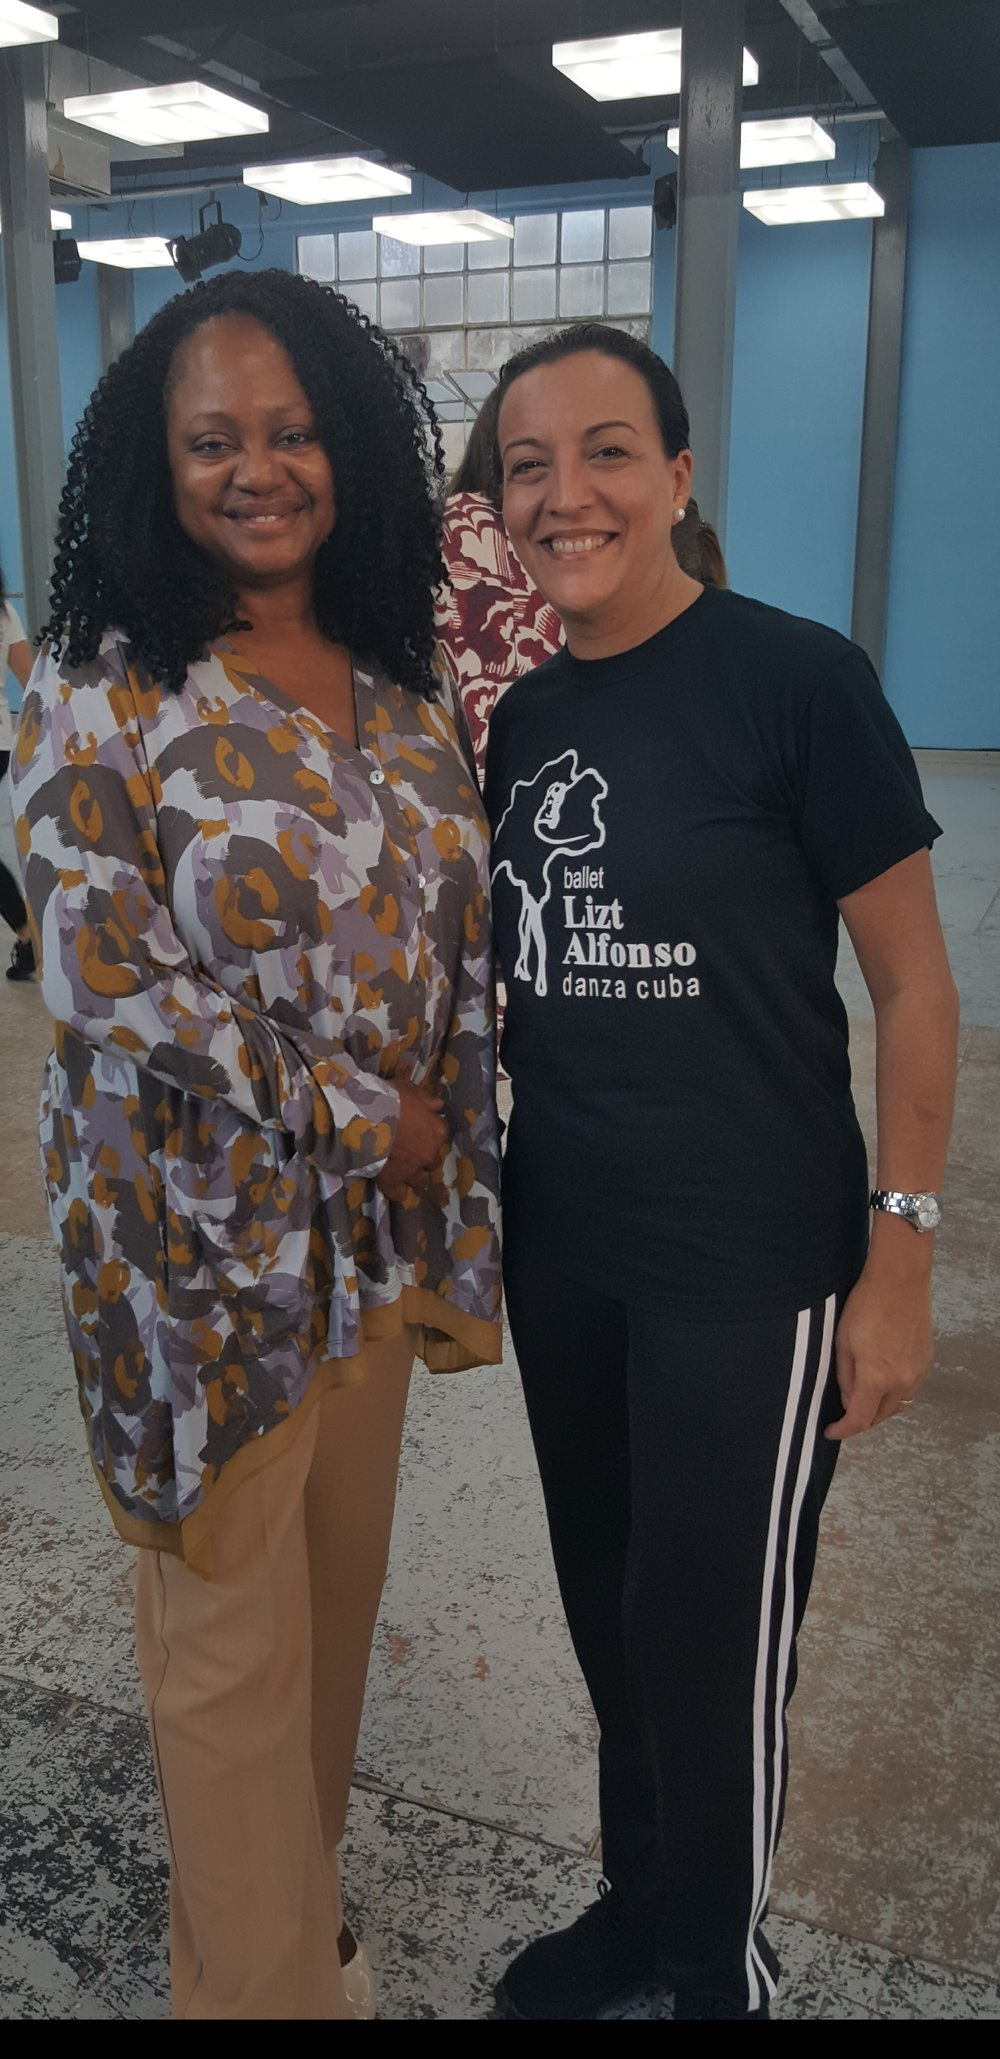 Amb. Jenkins, Founder and President of WCAPS, andLizt Alfonso in Cuba -